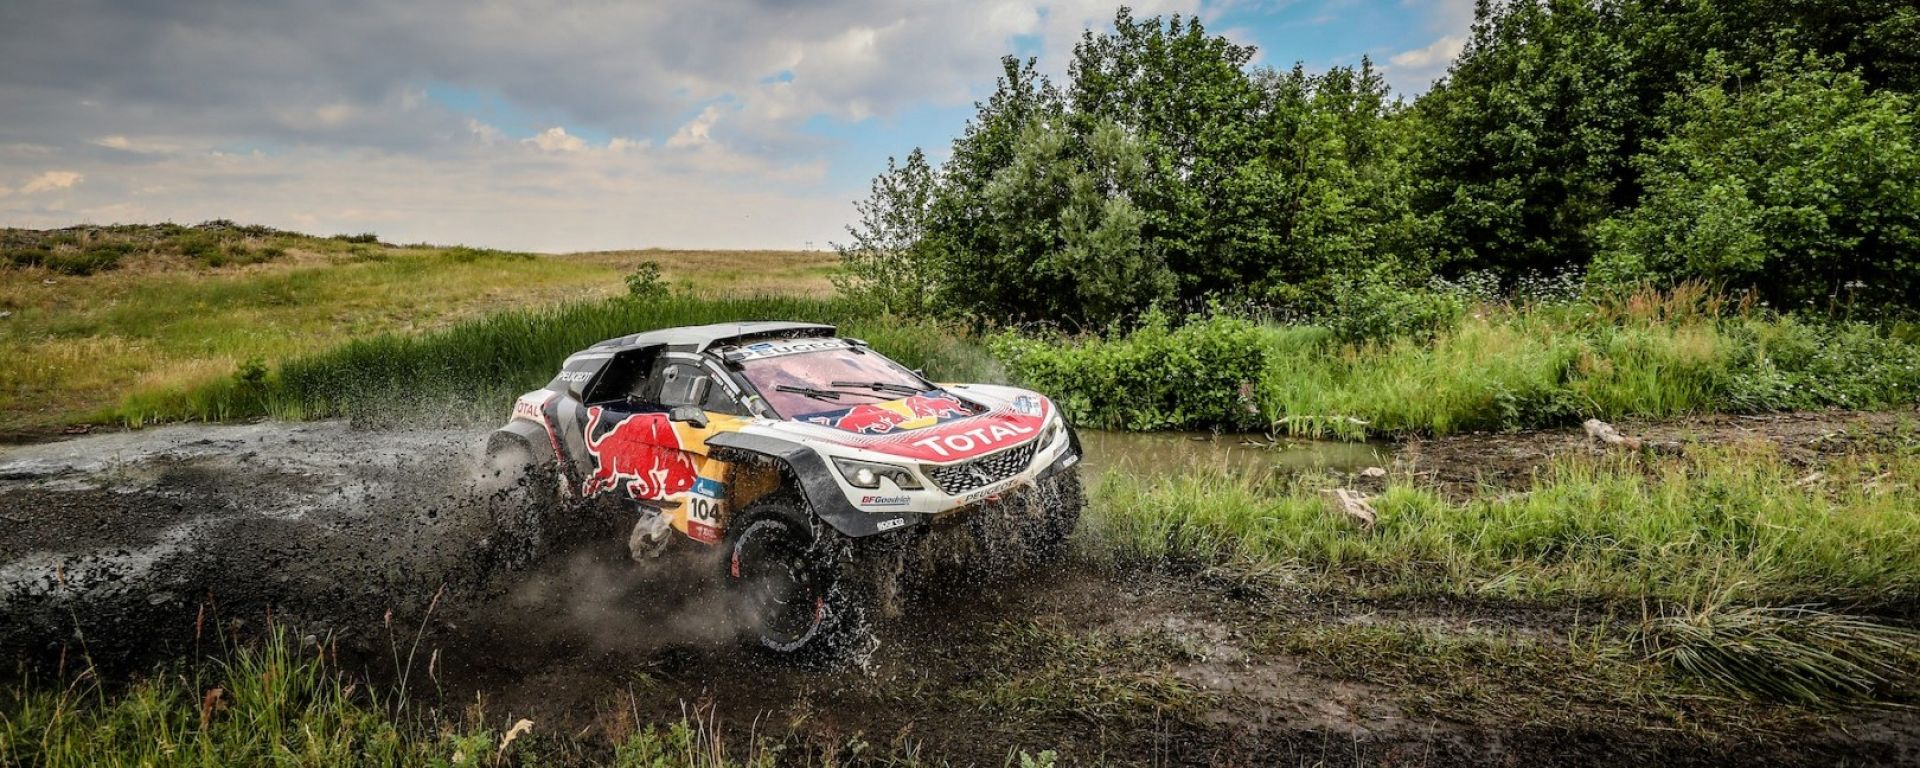 Peugeot DKR Maxi - Silk Way Rally 2017